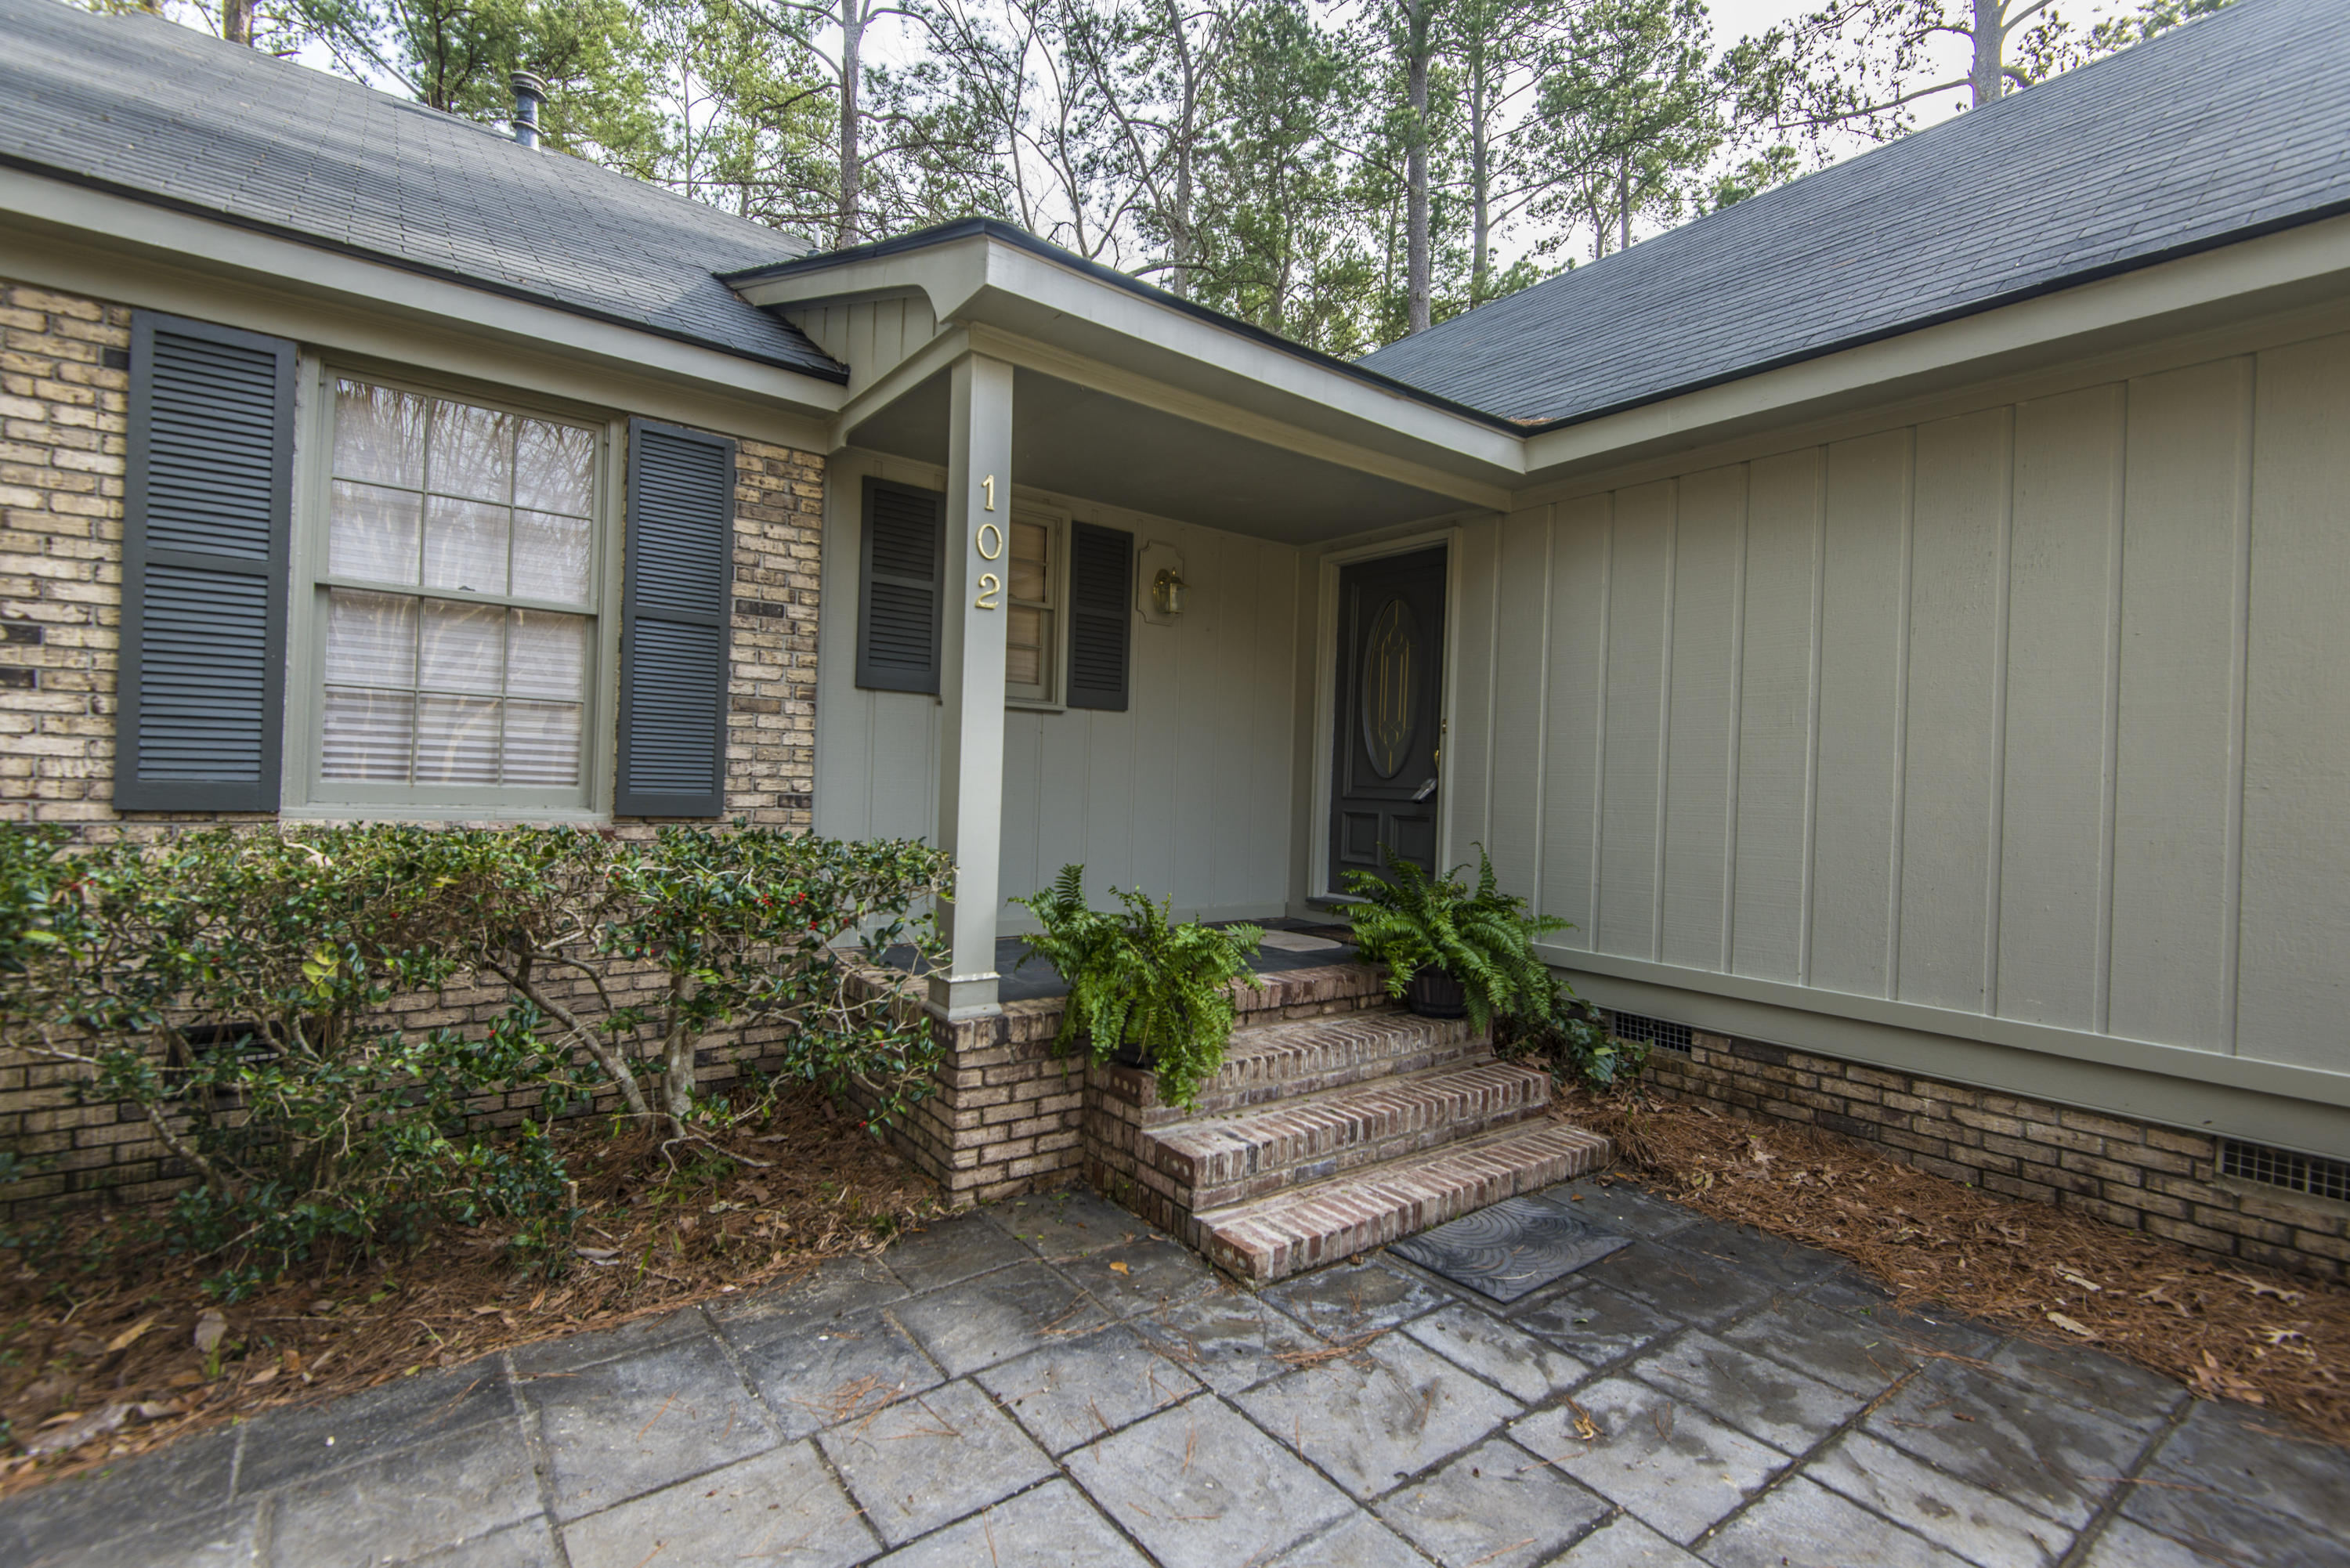 Kings Grant Homes For Sale - 102 Candlewood, Summerville, SC - 12